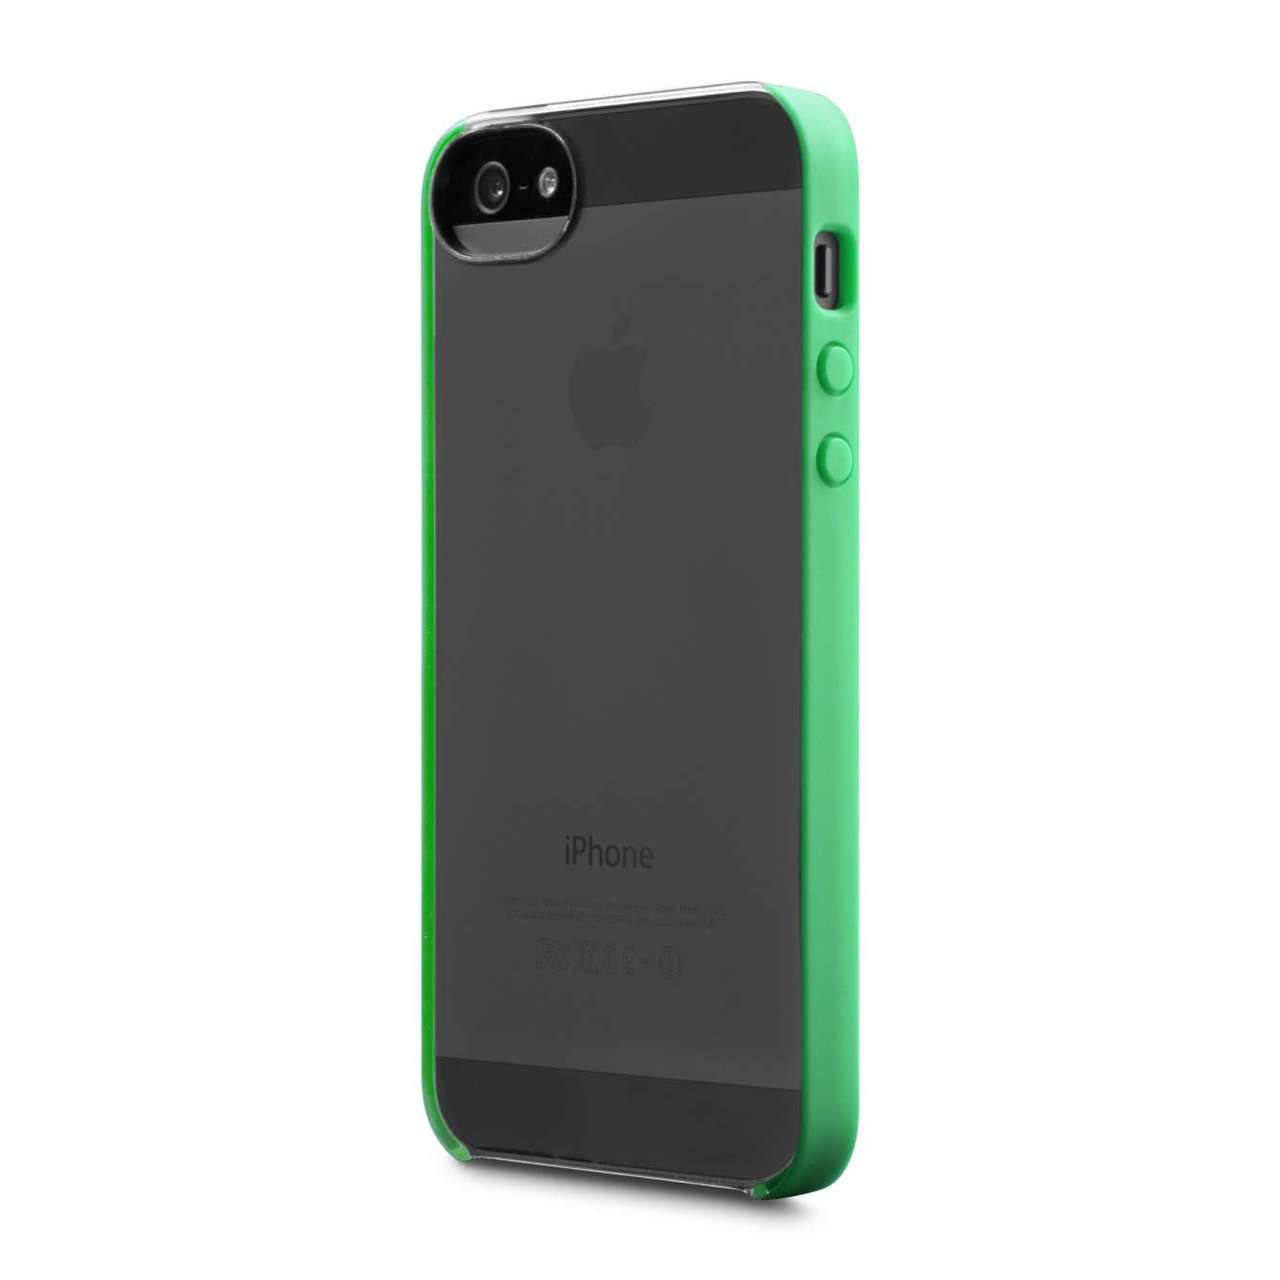 free shipping 712f3 a930b Incase Pro Snap Case for iPhone SE / 5S - Clear / Astrogreen